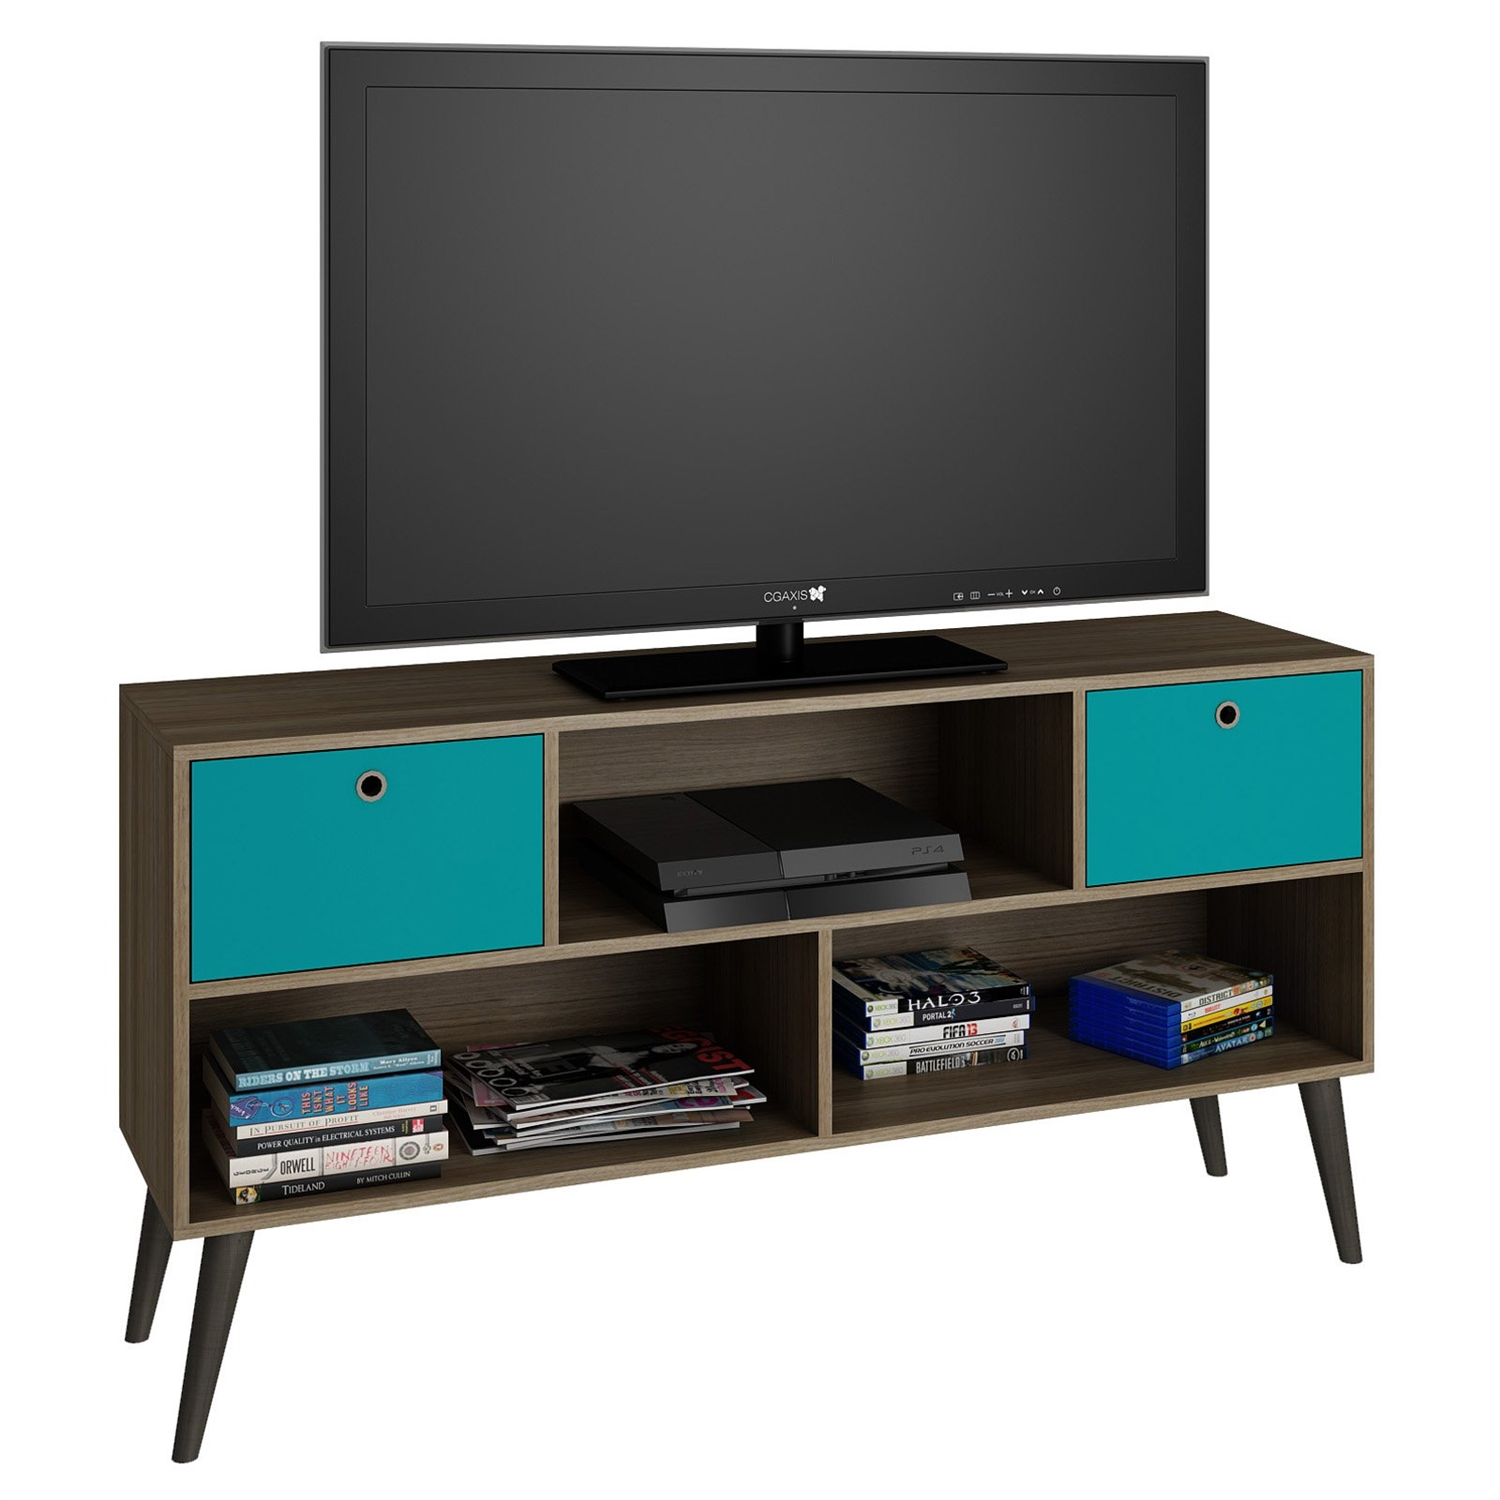 Modern Tv Modern Classic Mid Century Tv Stand Entertainment Center In Oak Aqua Grey Wood Finish